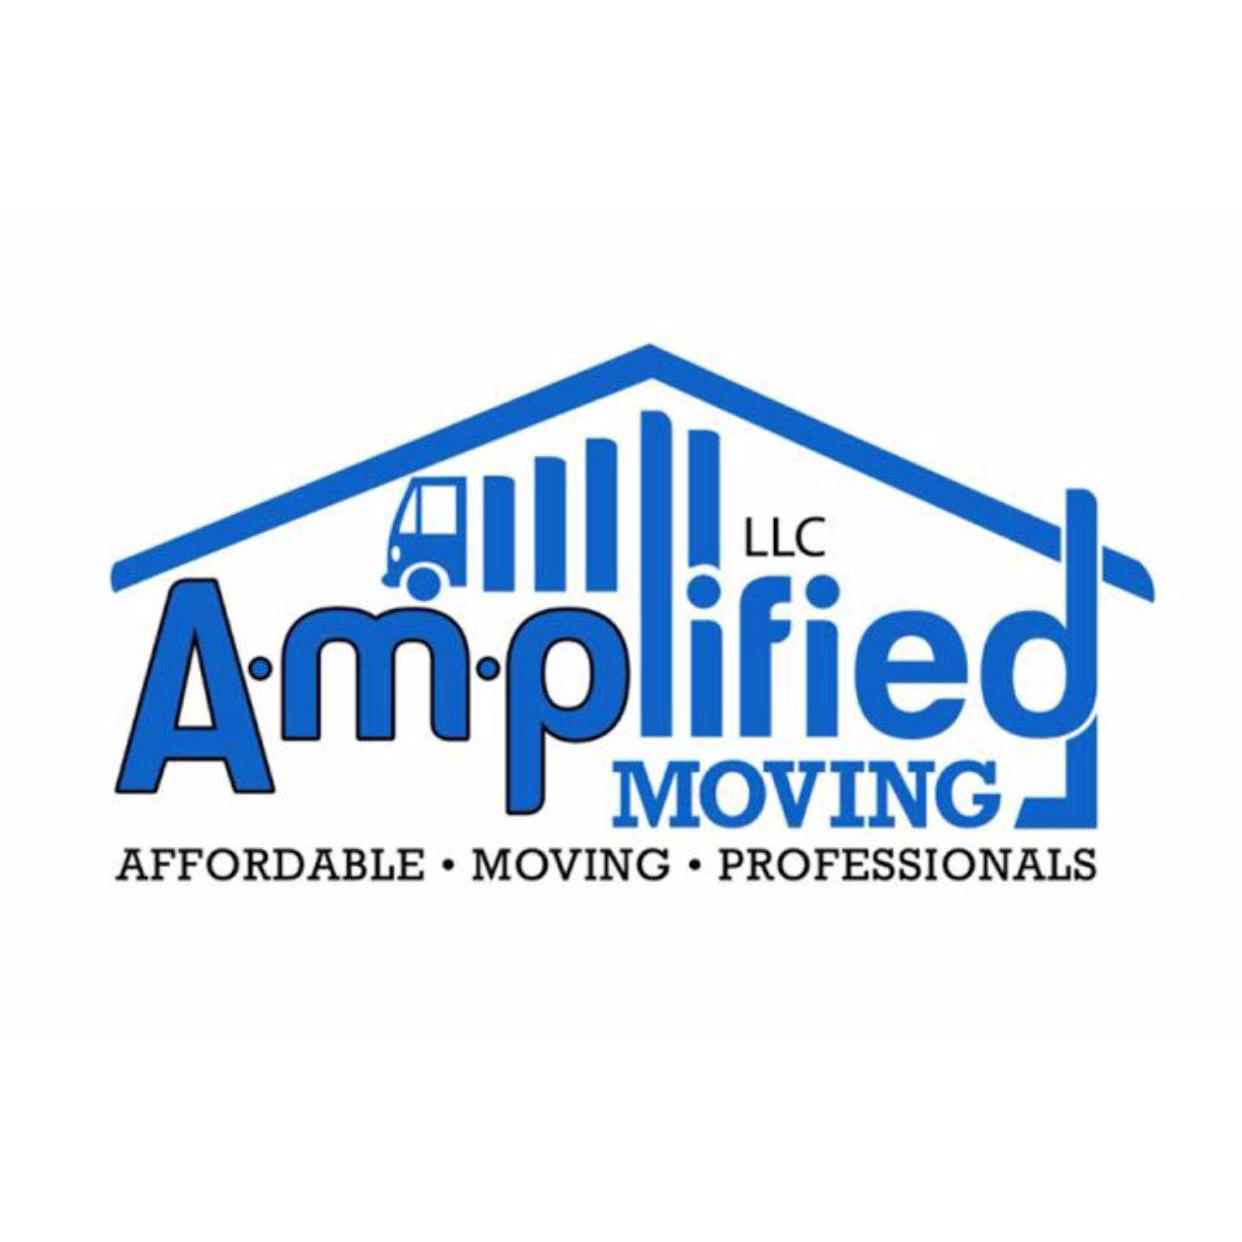 Amplified Moving LLC - Little Ferry, NJ 07643 - (201)956-5715 | ShowMeLocal.com